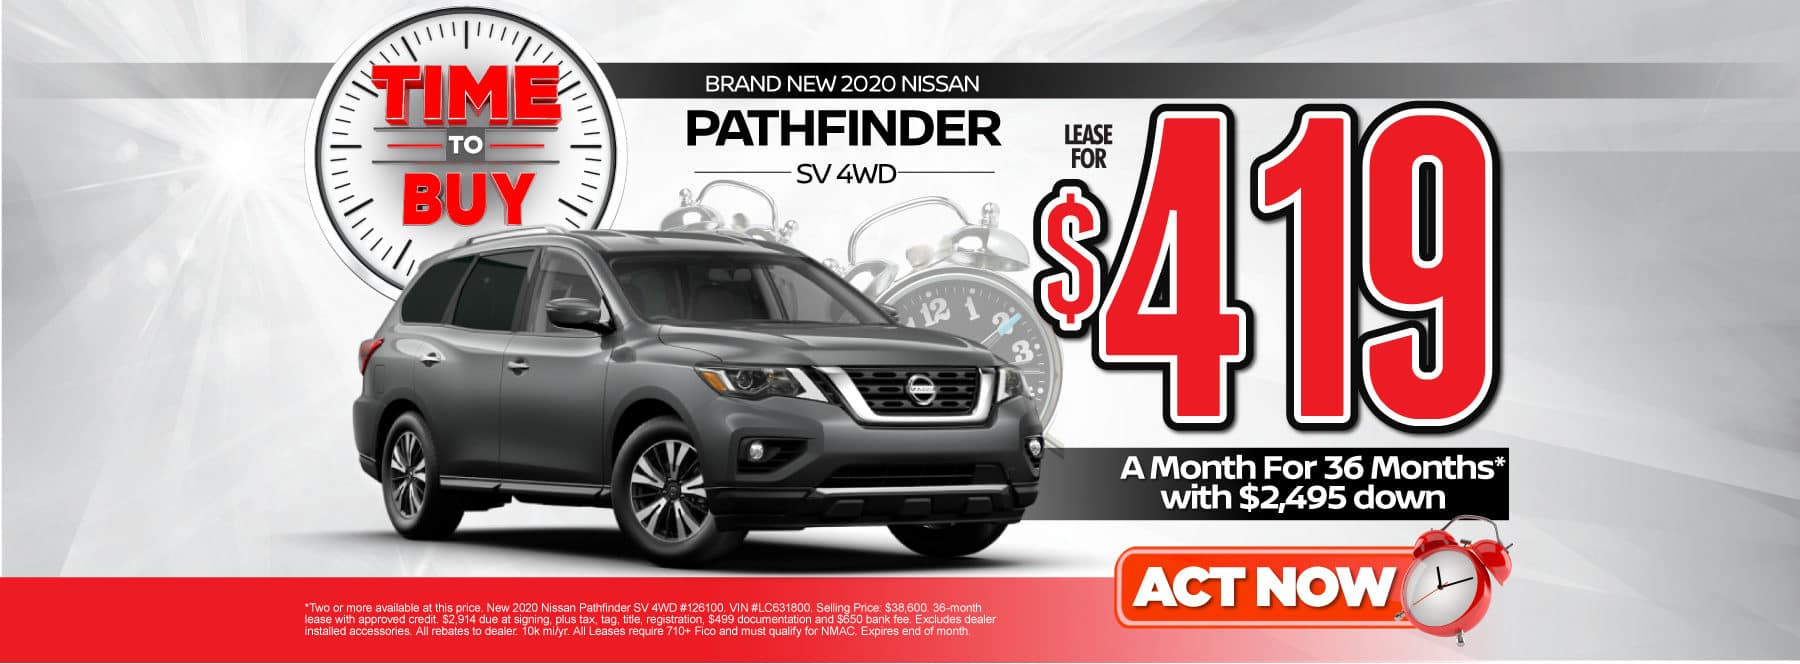 New 2020 Nissan Pathfinder | Lease for $419 a month | Act Now